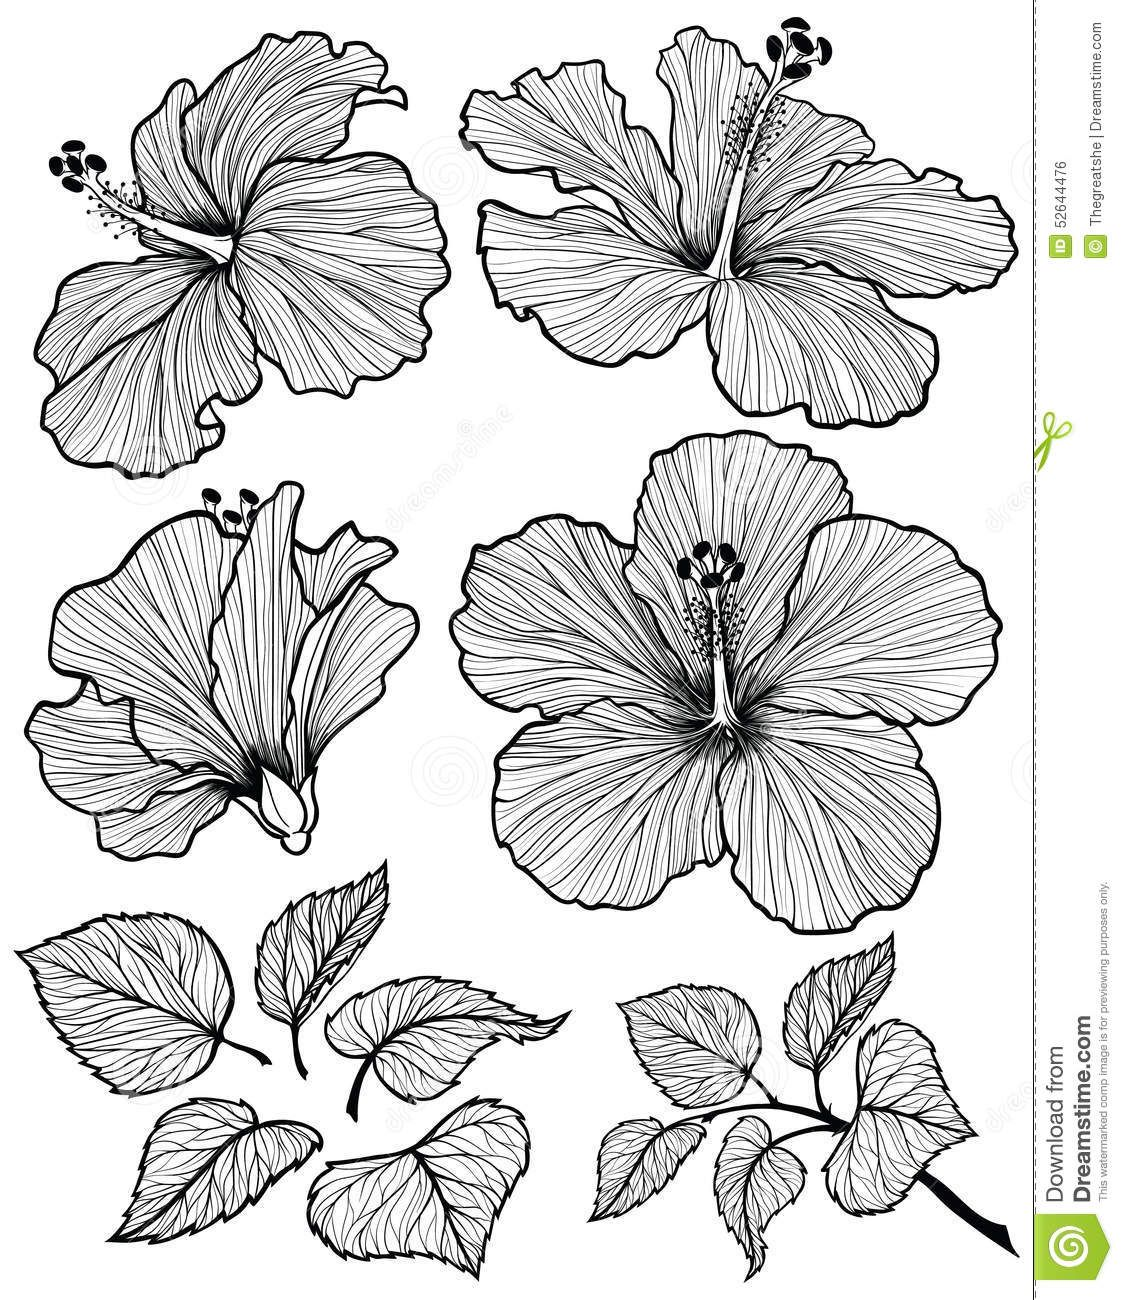 Tropical Flower Line Drawing : Hibiscus flower graphic head set with leaves and branch